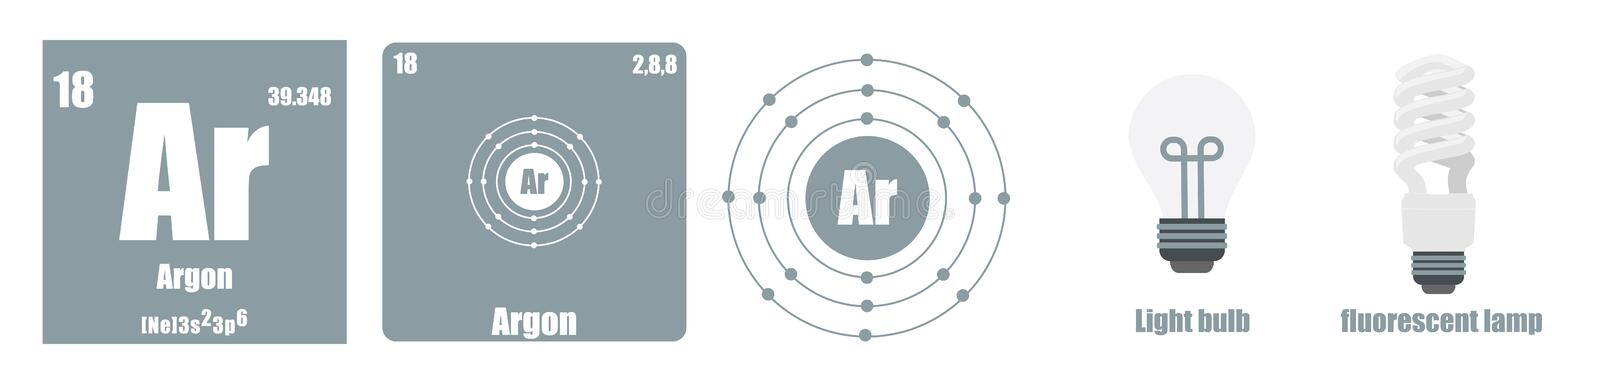 Periodic Table of element group VIII The noble gases vector illustration